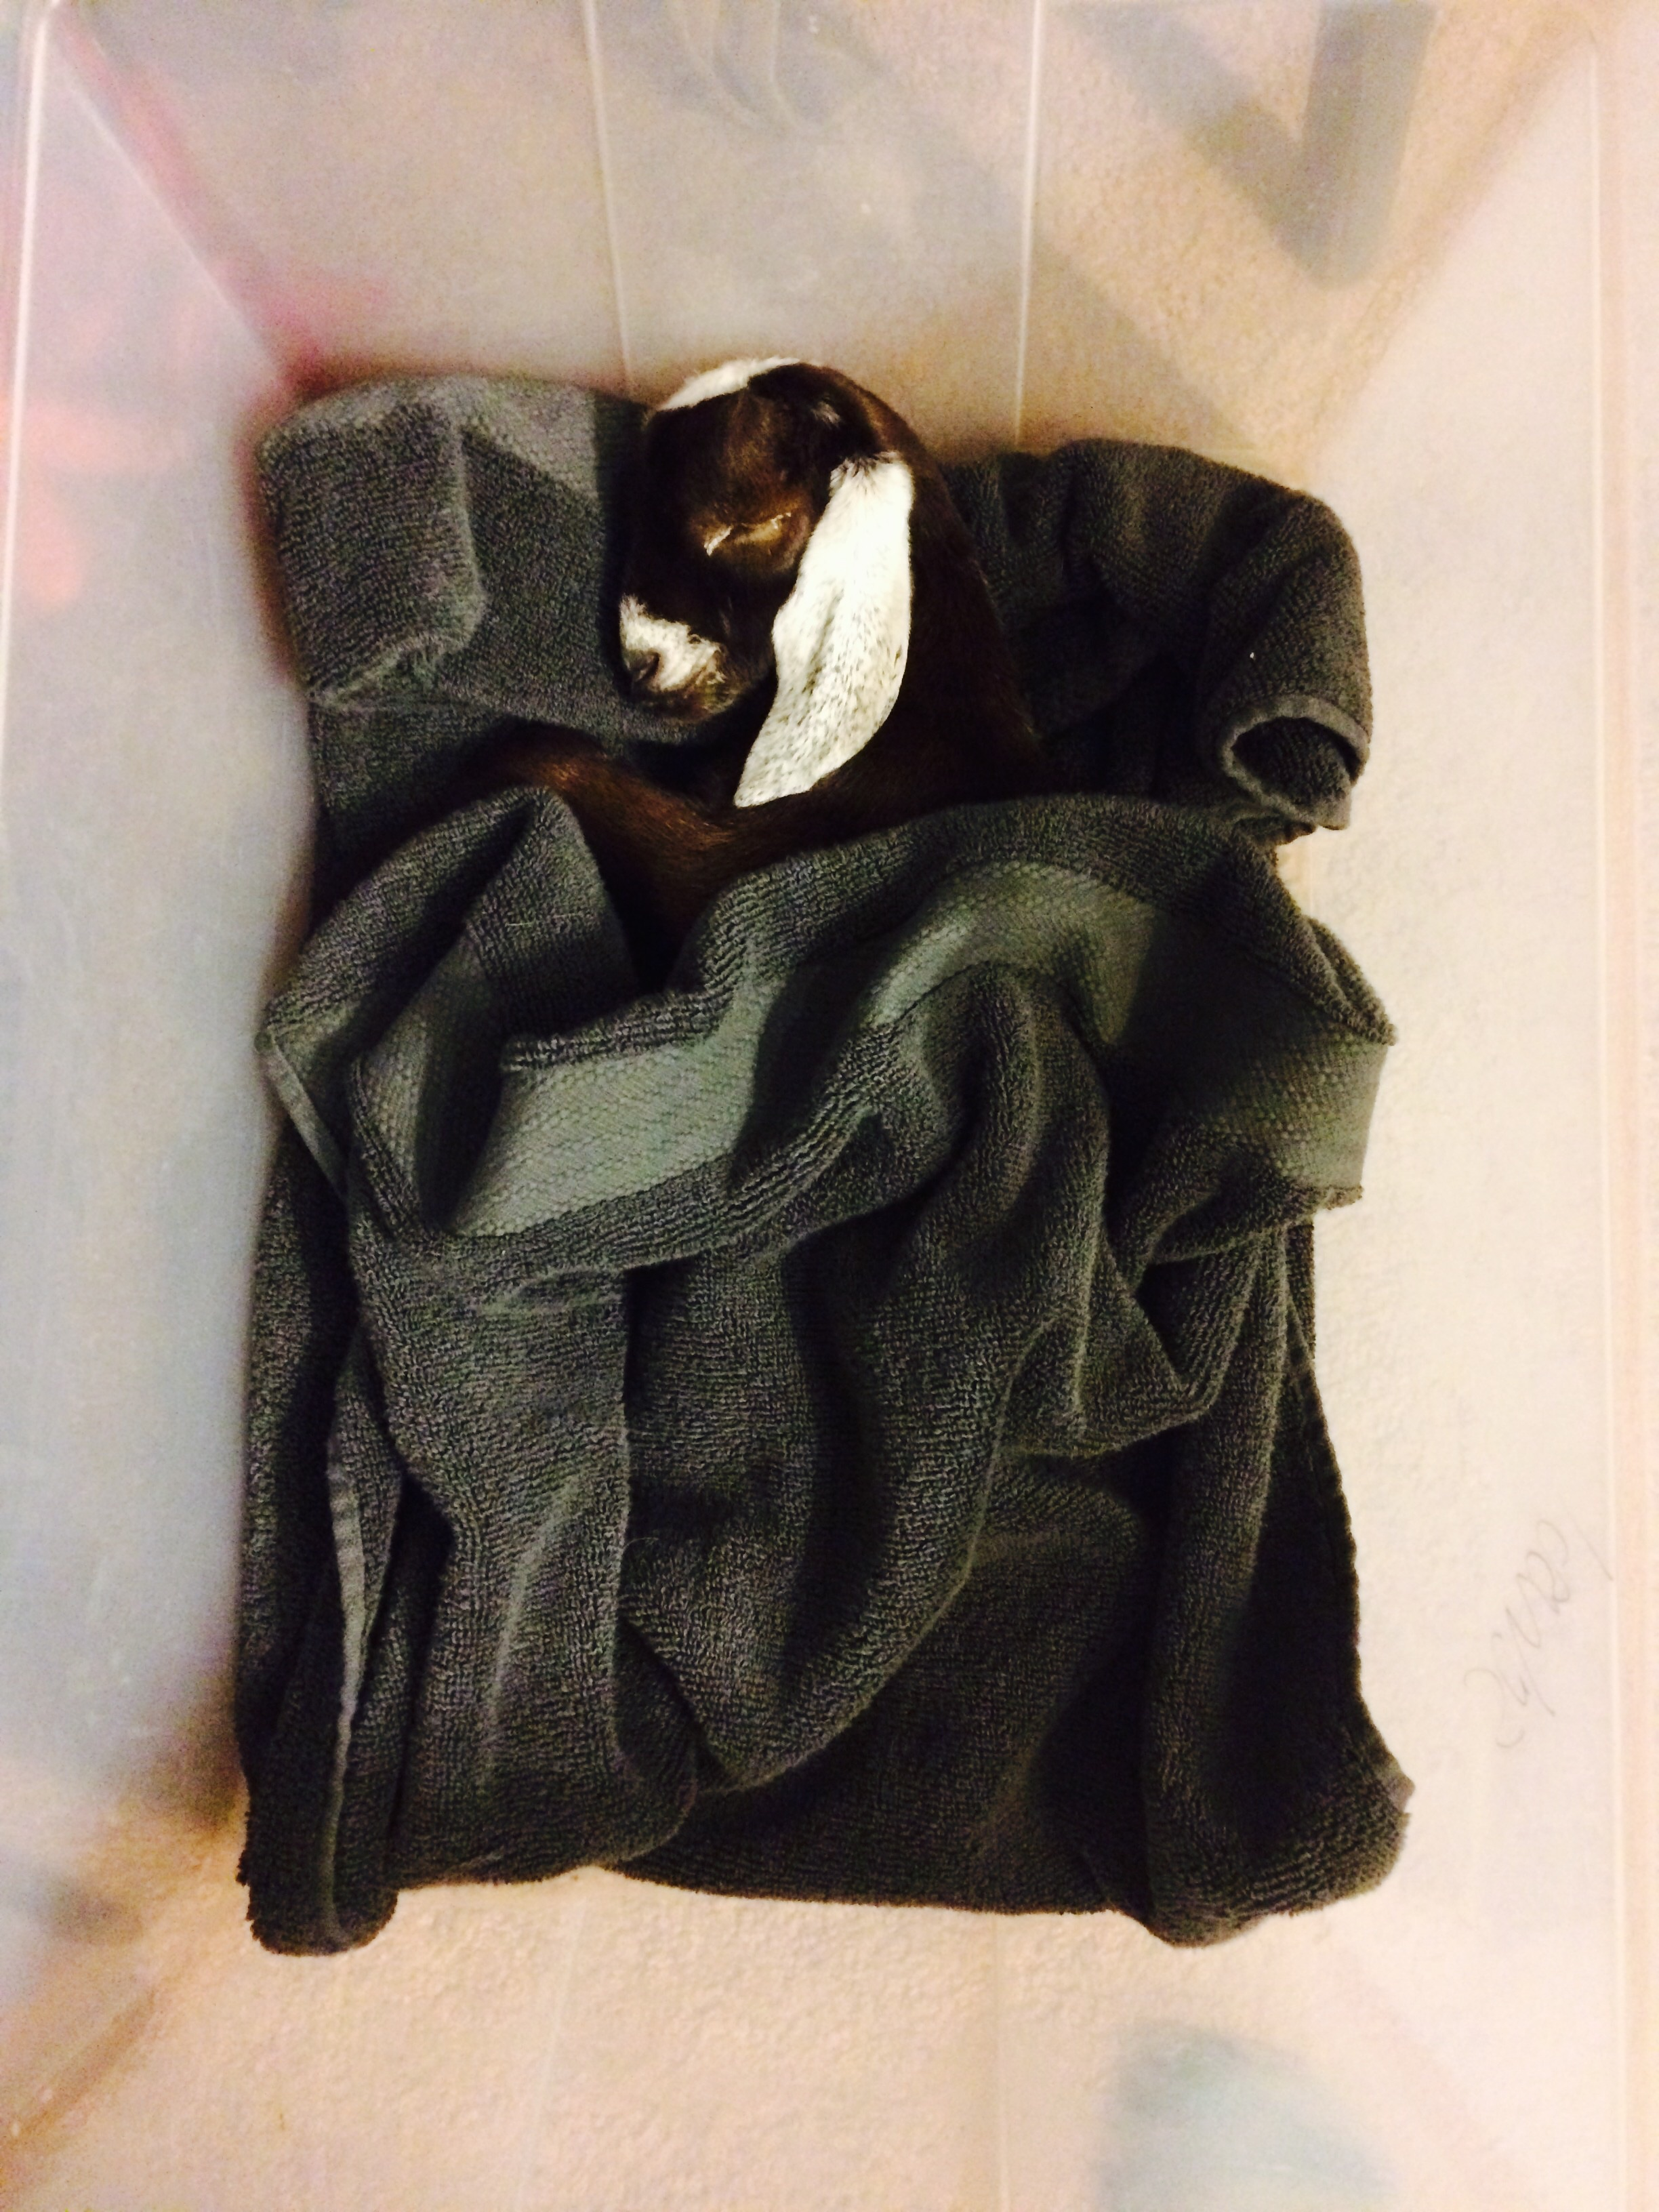 """Girl 2 tucked him in """"snug as a bug"""" last night, knowing that it may be the last time she'd see him."""